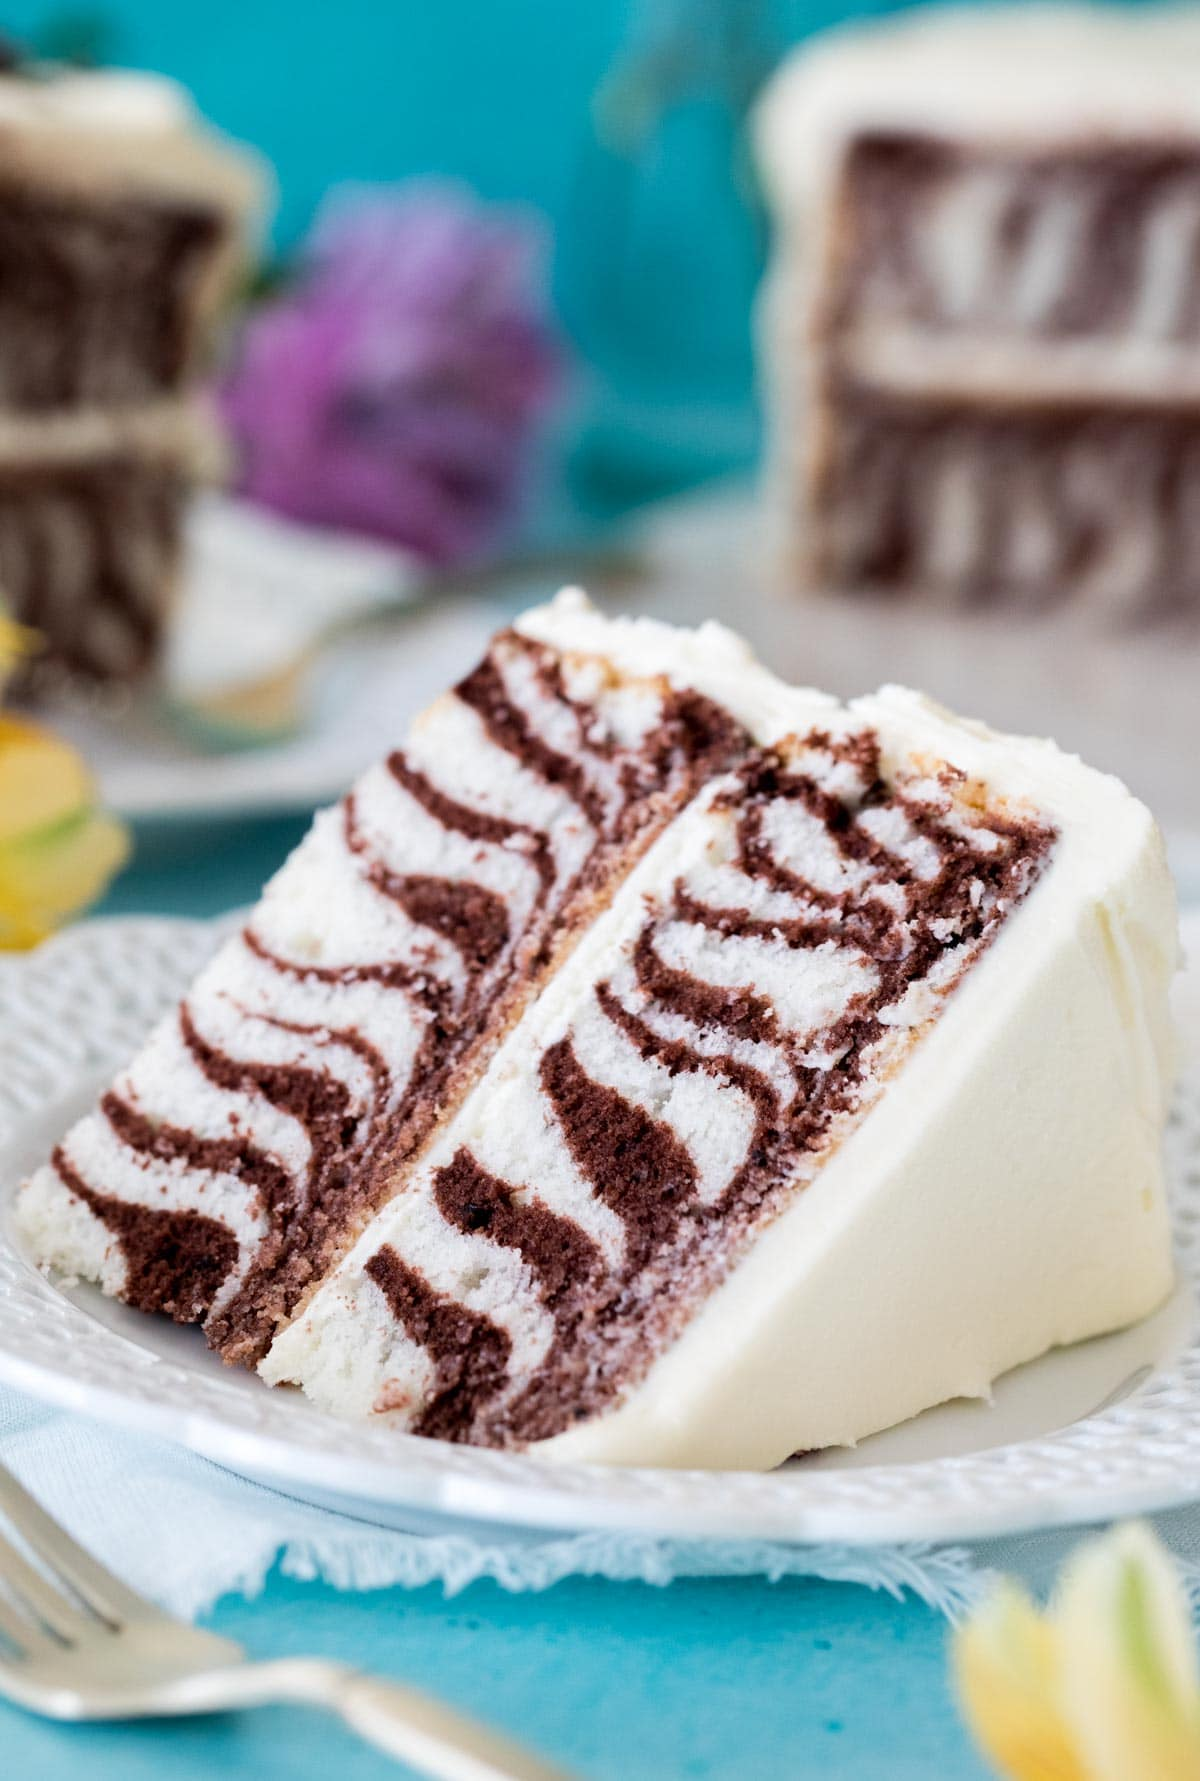 Slice of zebra cake on white plate